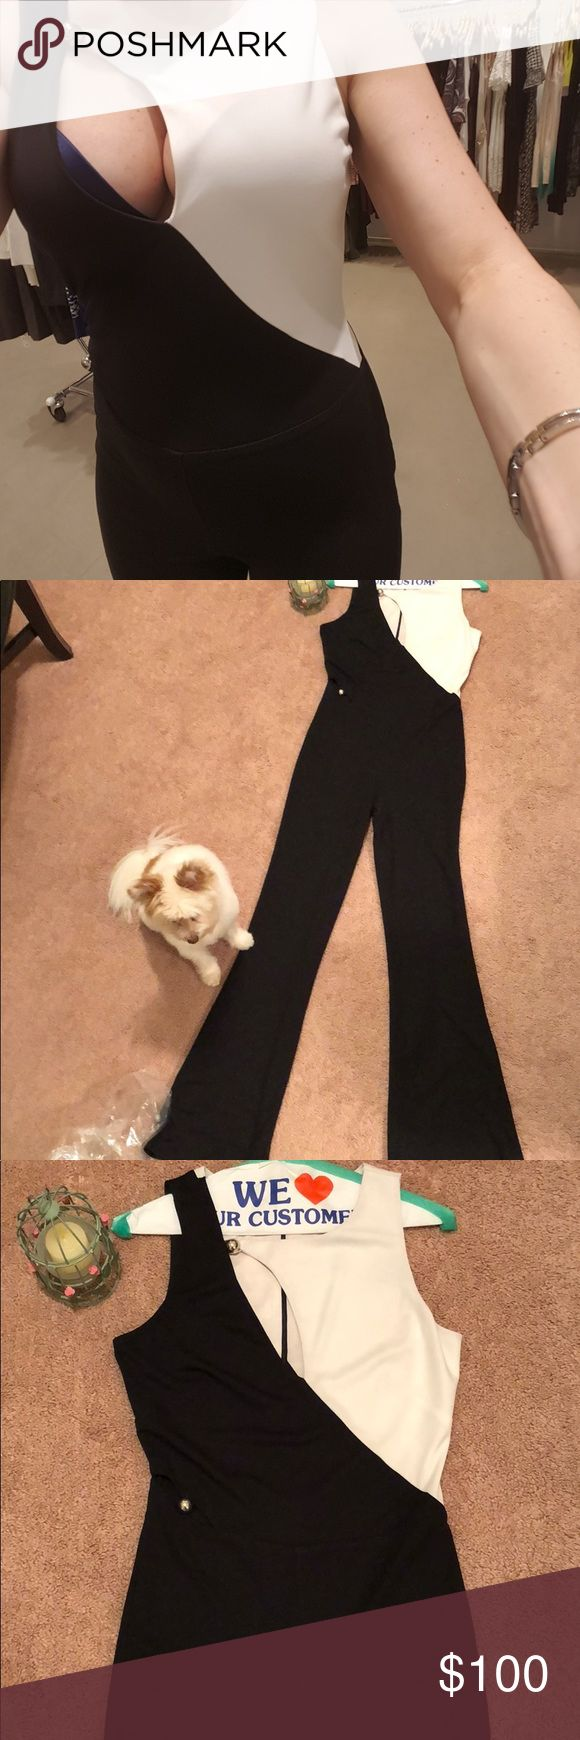 Sheri Bodell One Piece Jumpsuit - Black & White Beautiful!! Worn once!! Jumpsuit - I wore it to a Broadway show - what a show stopper!! Dry cleaned and in perfect condition!! Perfect for a night out - broadway show and dinner - sexy!! Rock it!! Dog is not included!!! Sheri Bodell Other